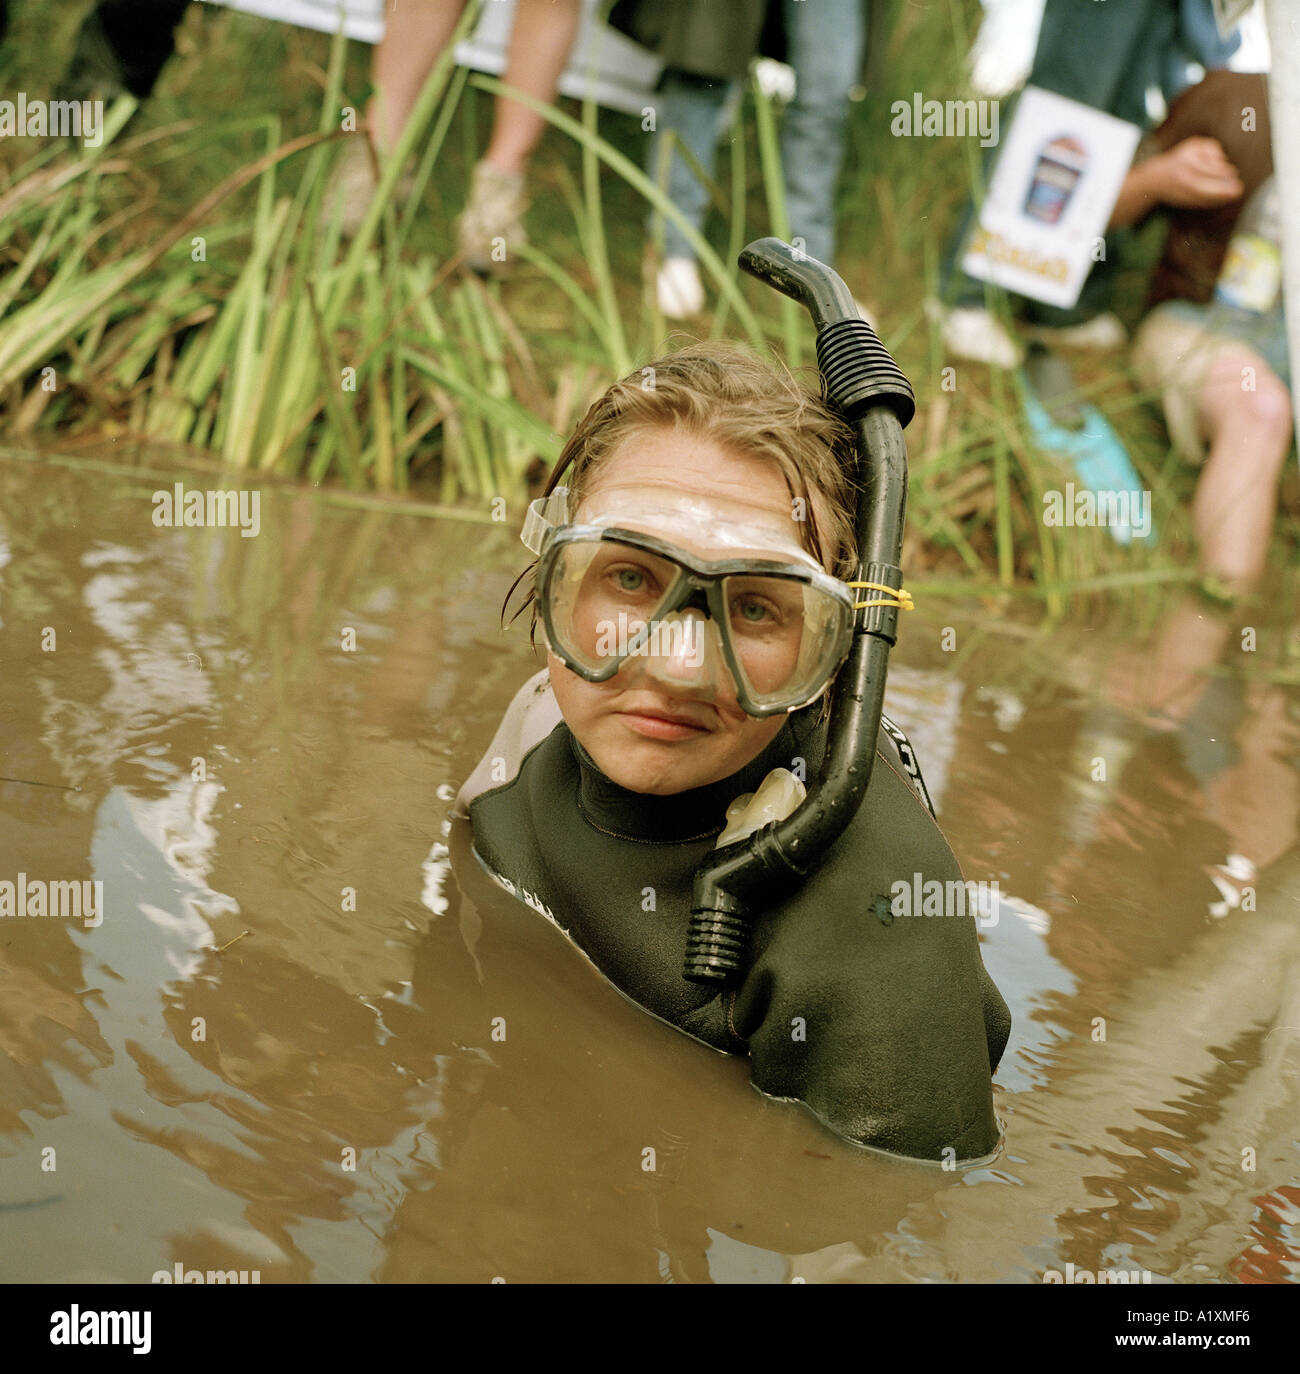 World bog snorkelling championships Llanwrtyd Well Mid Wales 2001 - Stock Image